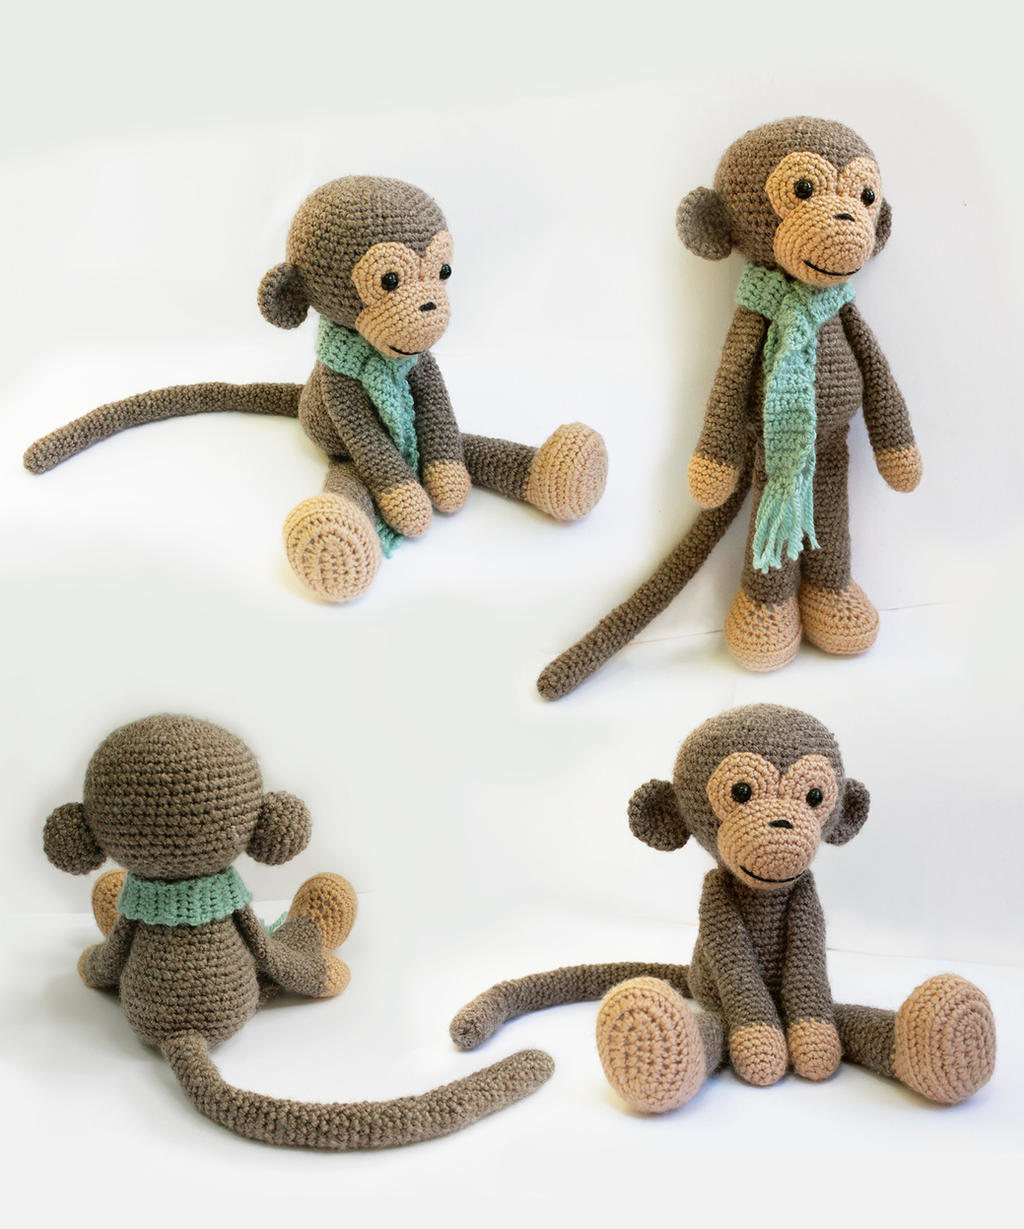 Amigurumi To Go Monkey : Amigurumi Monkey Pattern by AnatTzach on DeviantArt